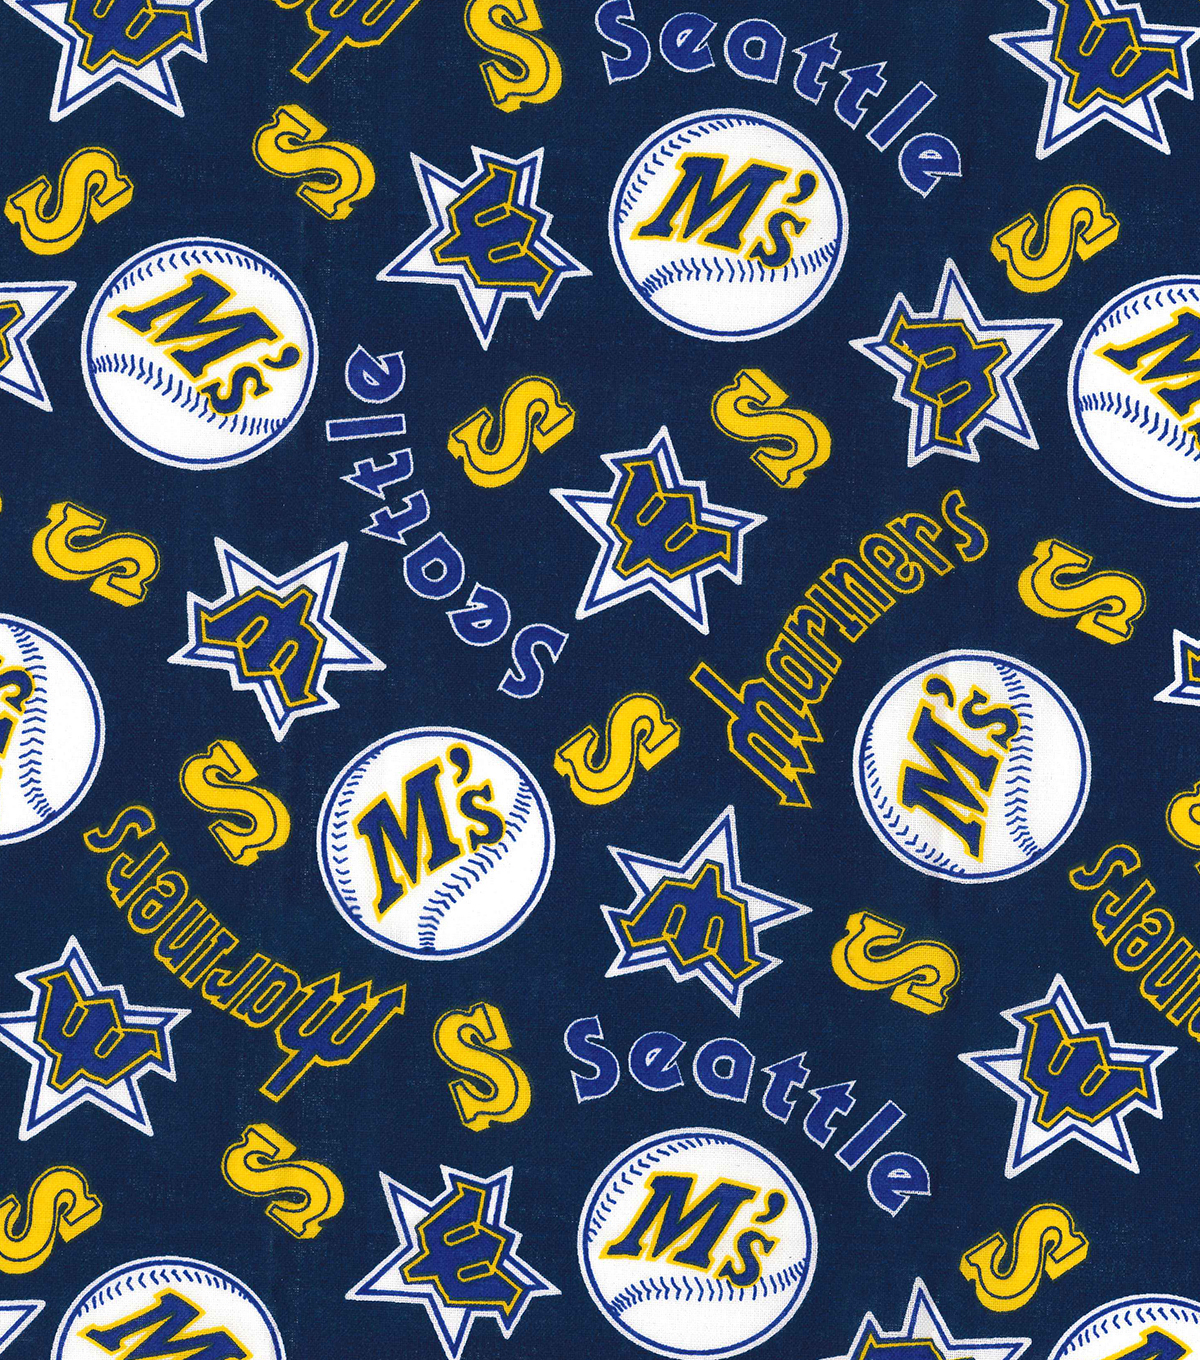 Seattle Mariners Cotton Fabric 44 Navy Cooperstown Joann